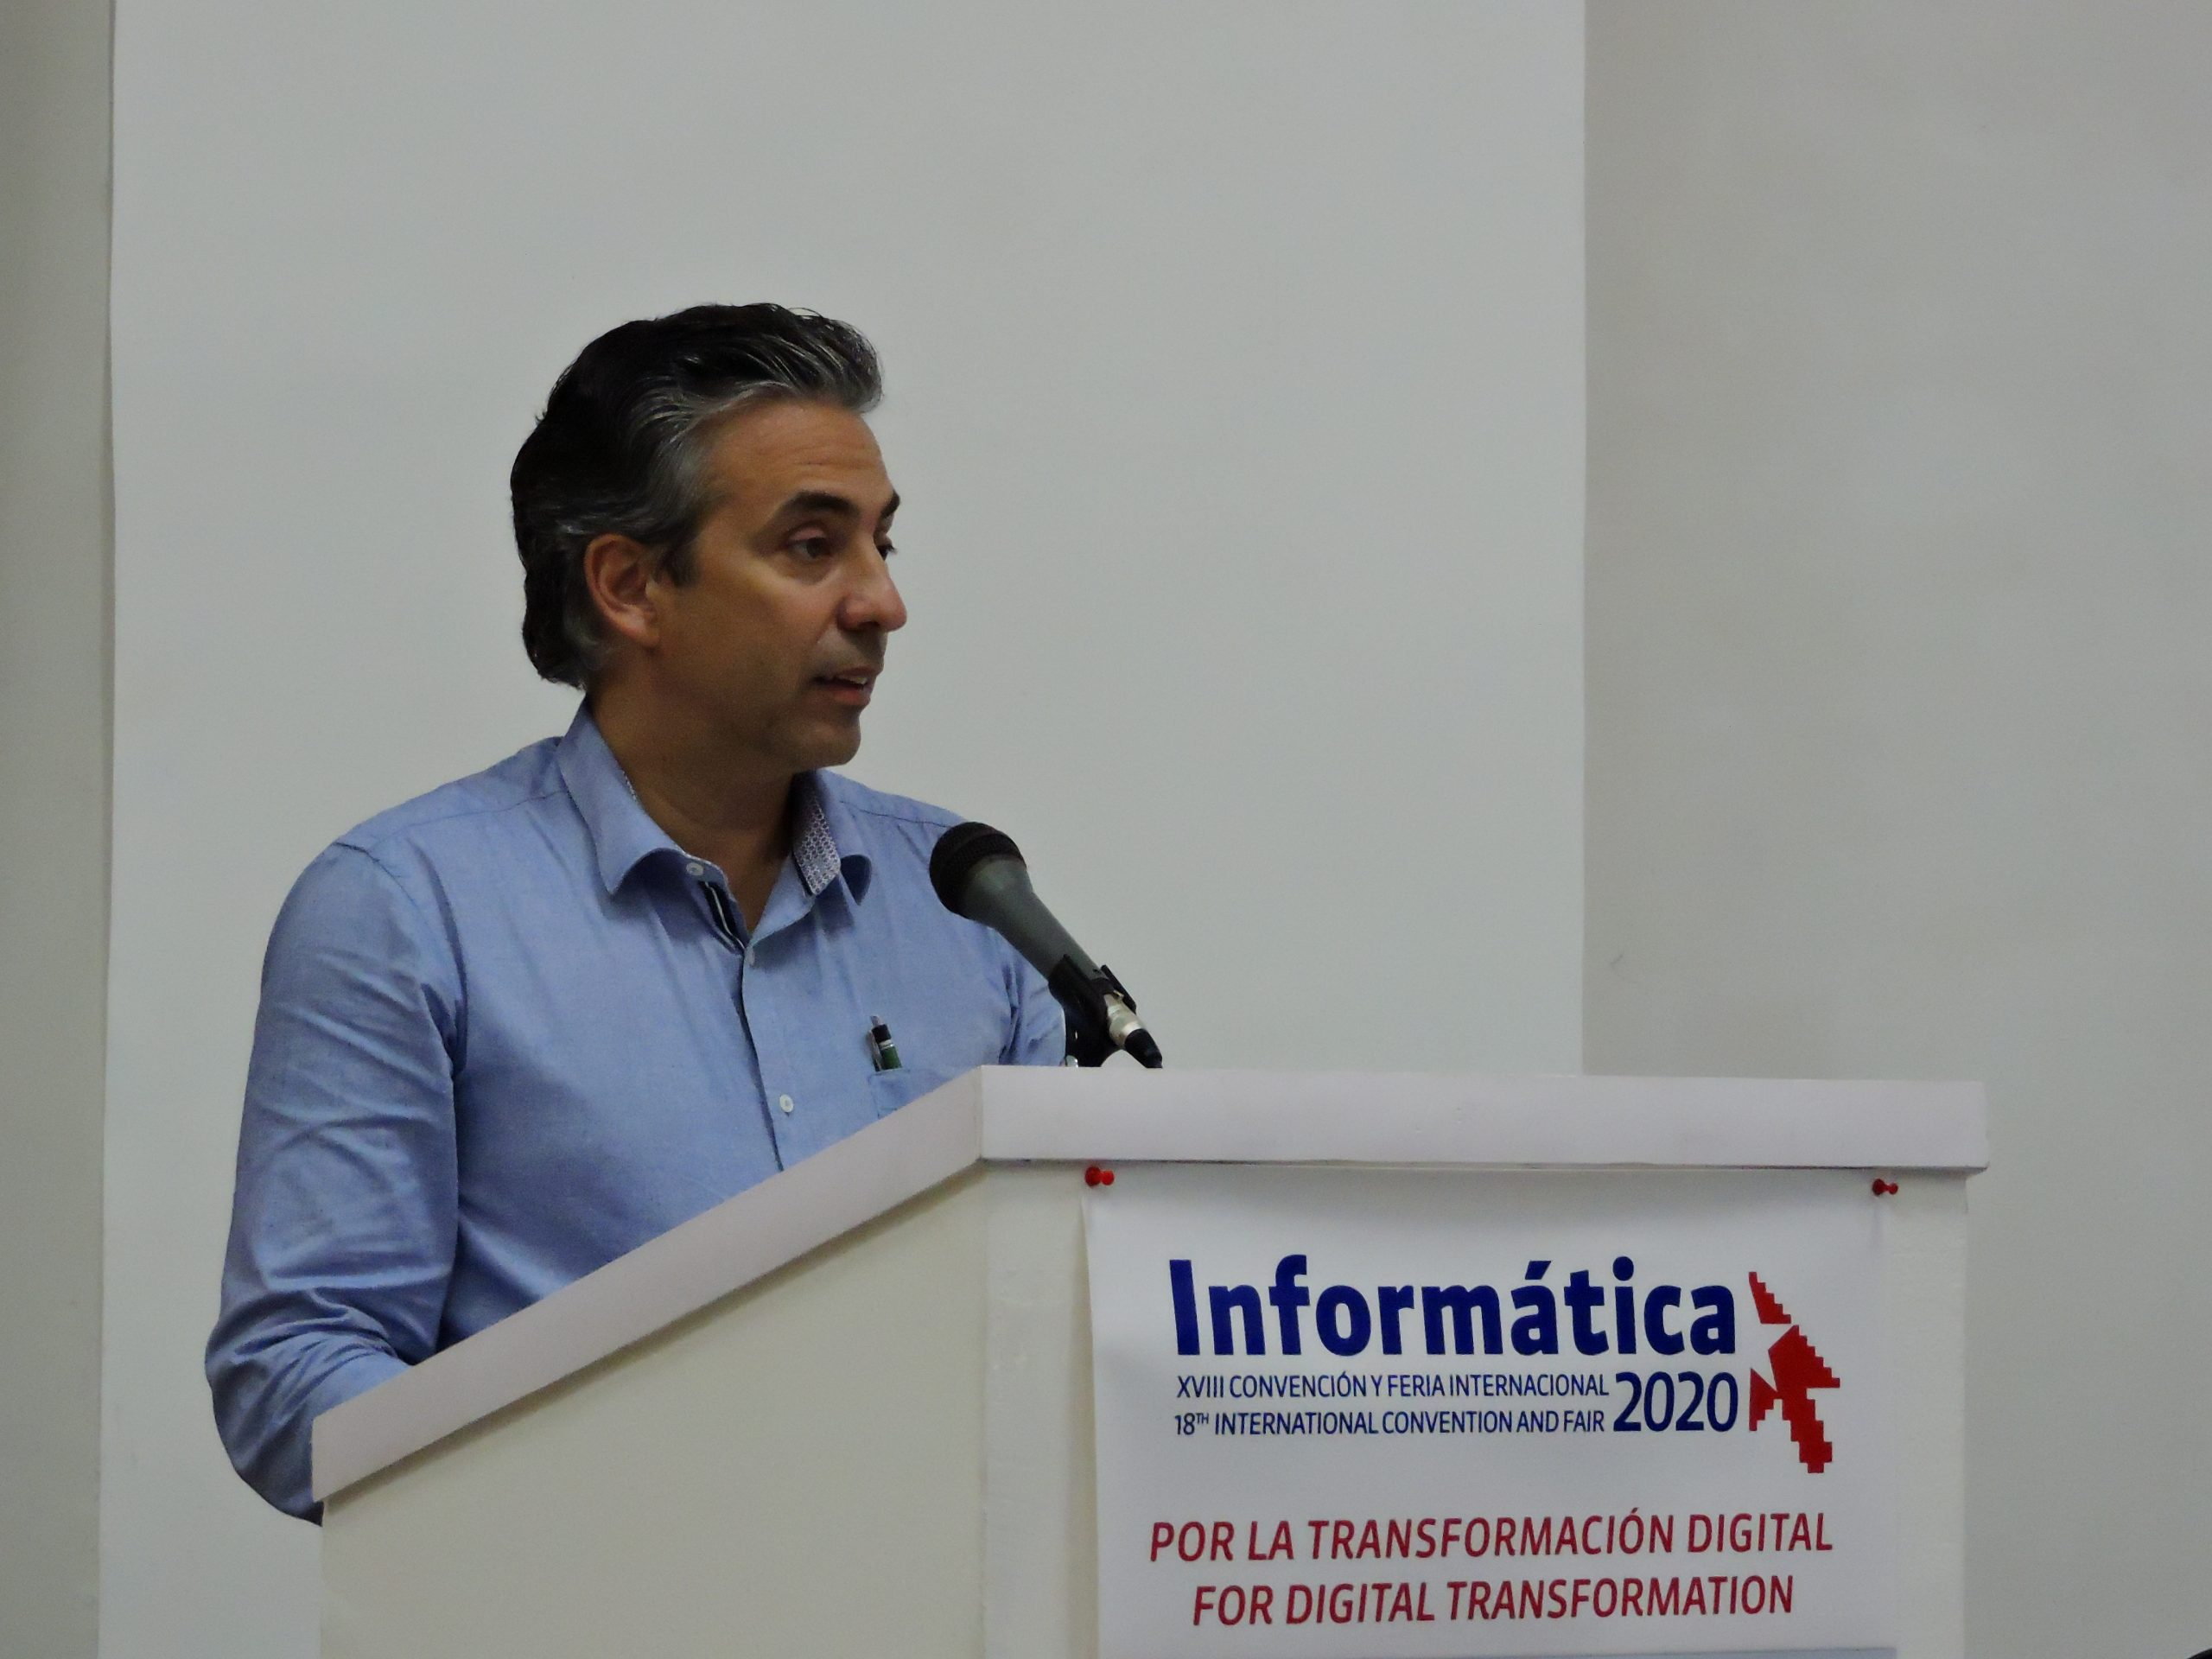 2020 Call for INFORMATICA 2020 made by the Cuban First Deputy Minister of Communications, Wilfredo González